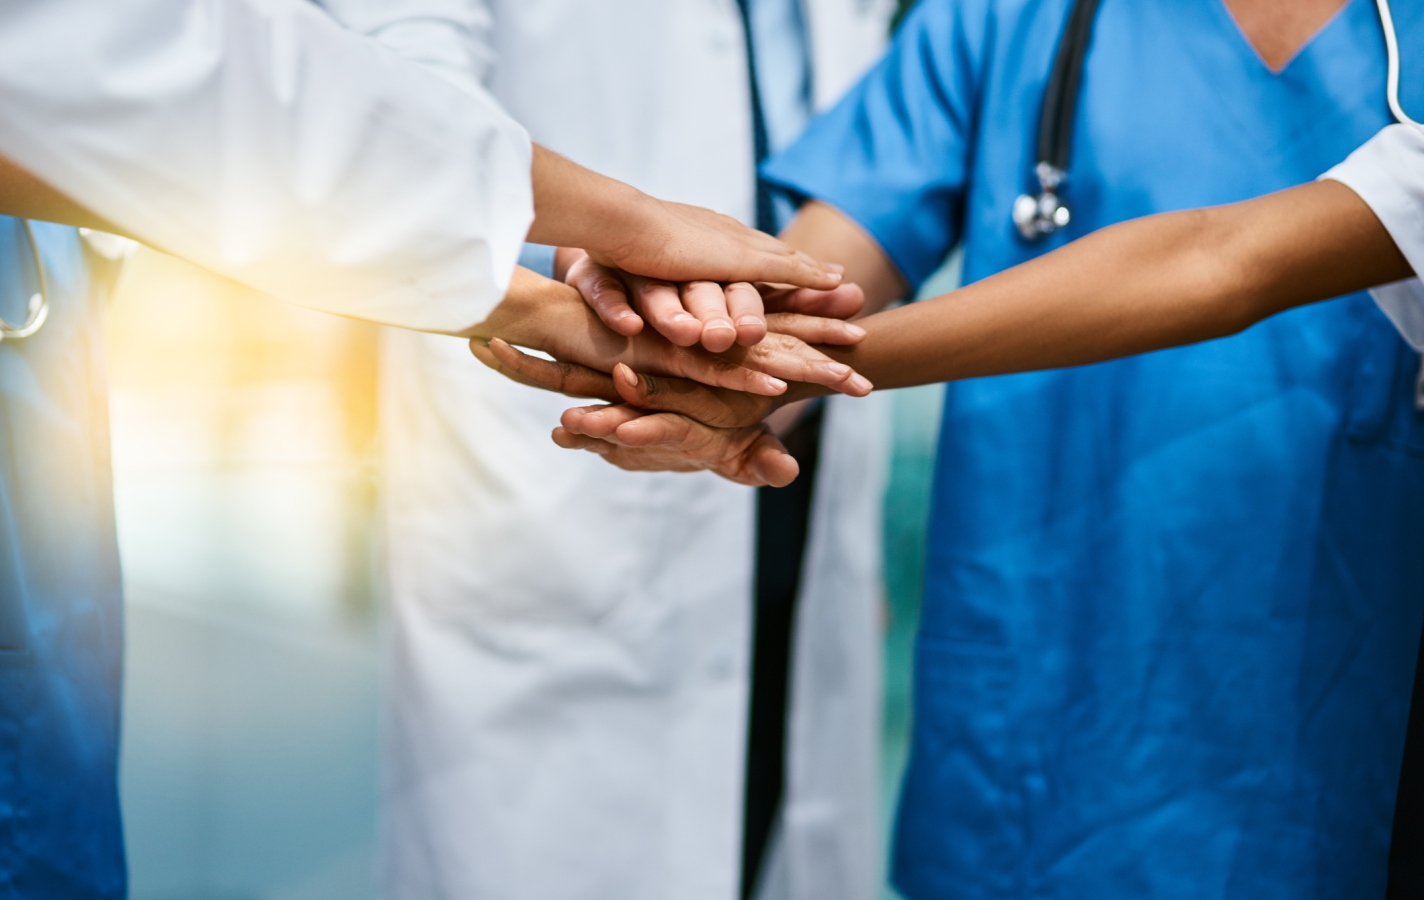 group of unrecognisable medical practitioners joining their hands together in unity